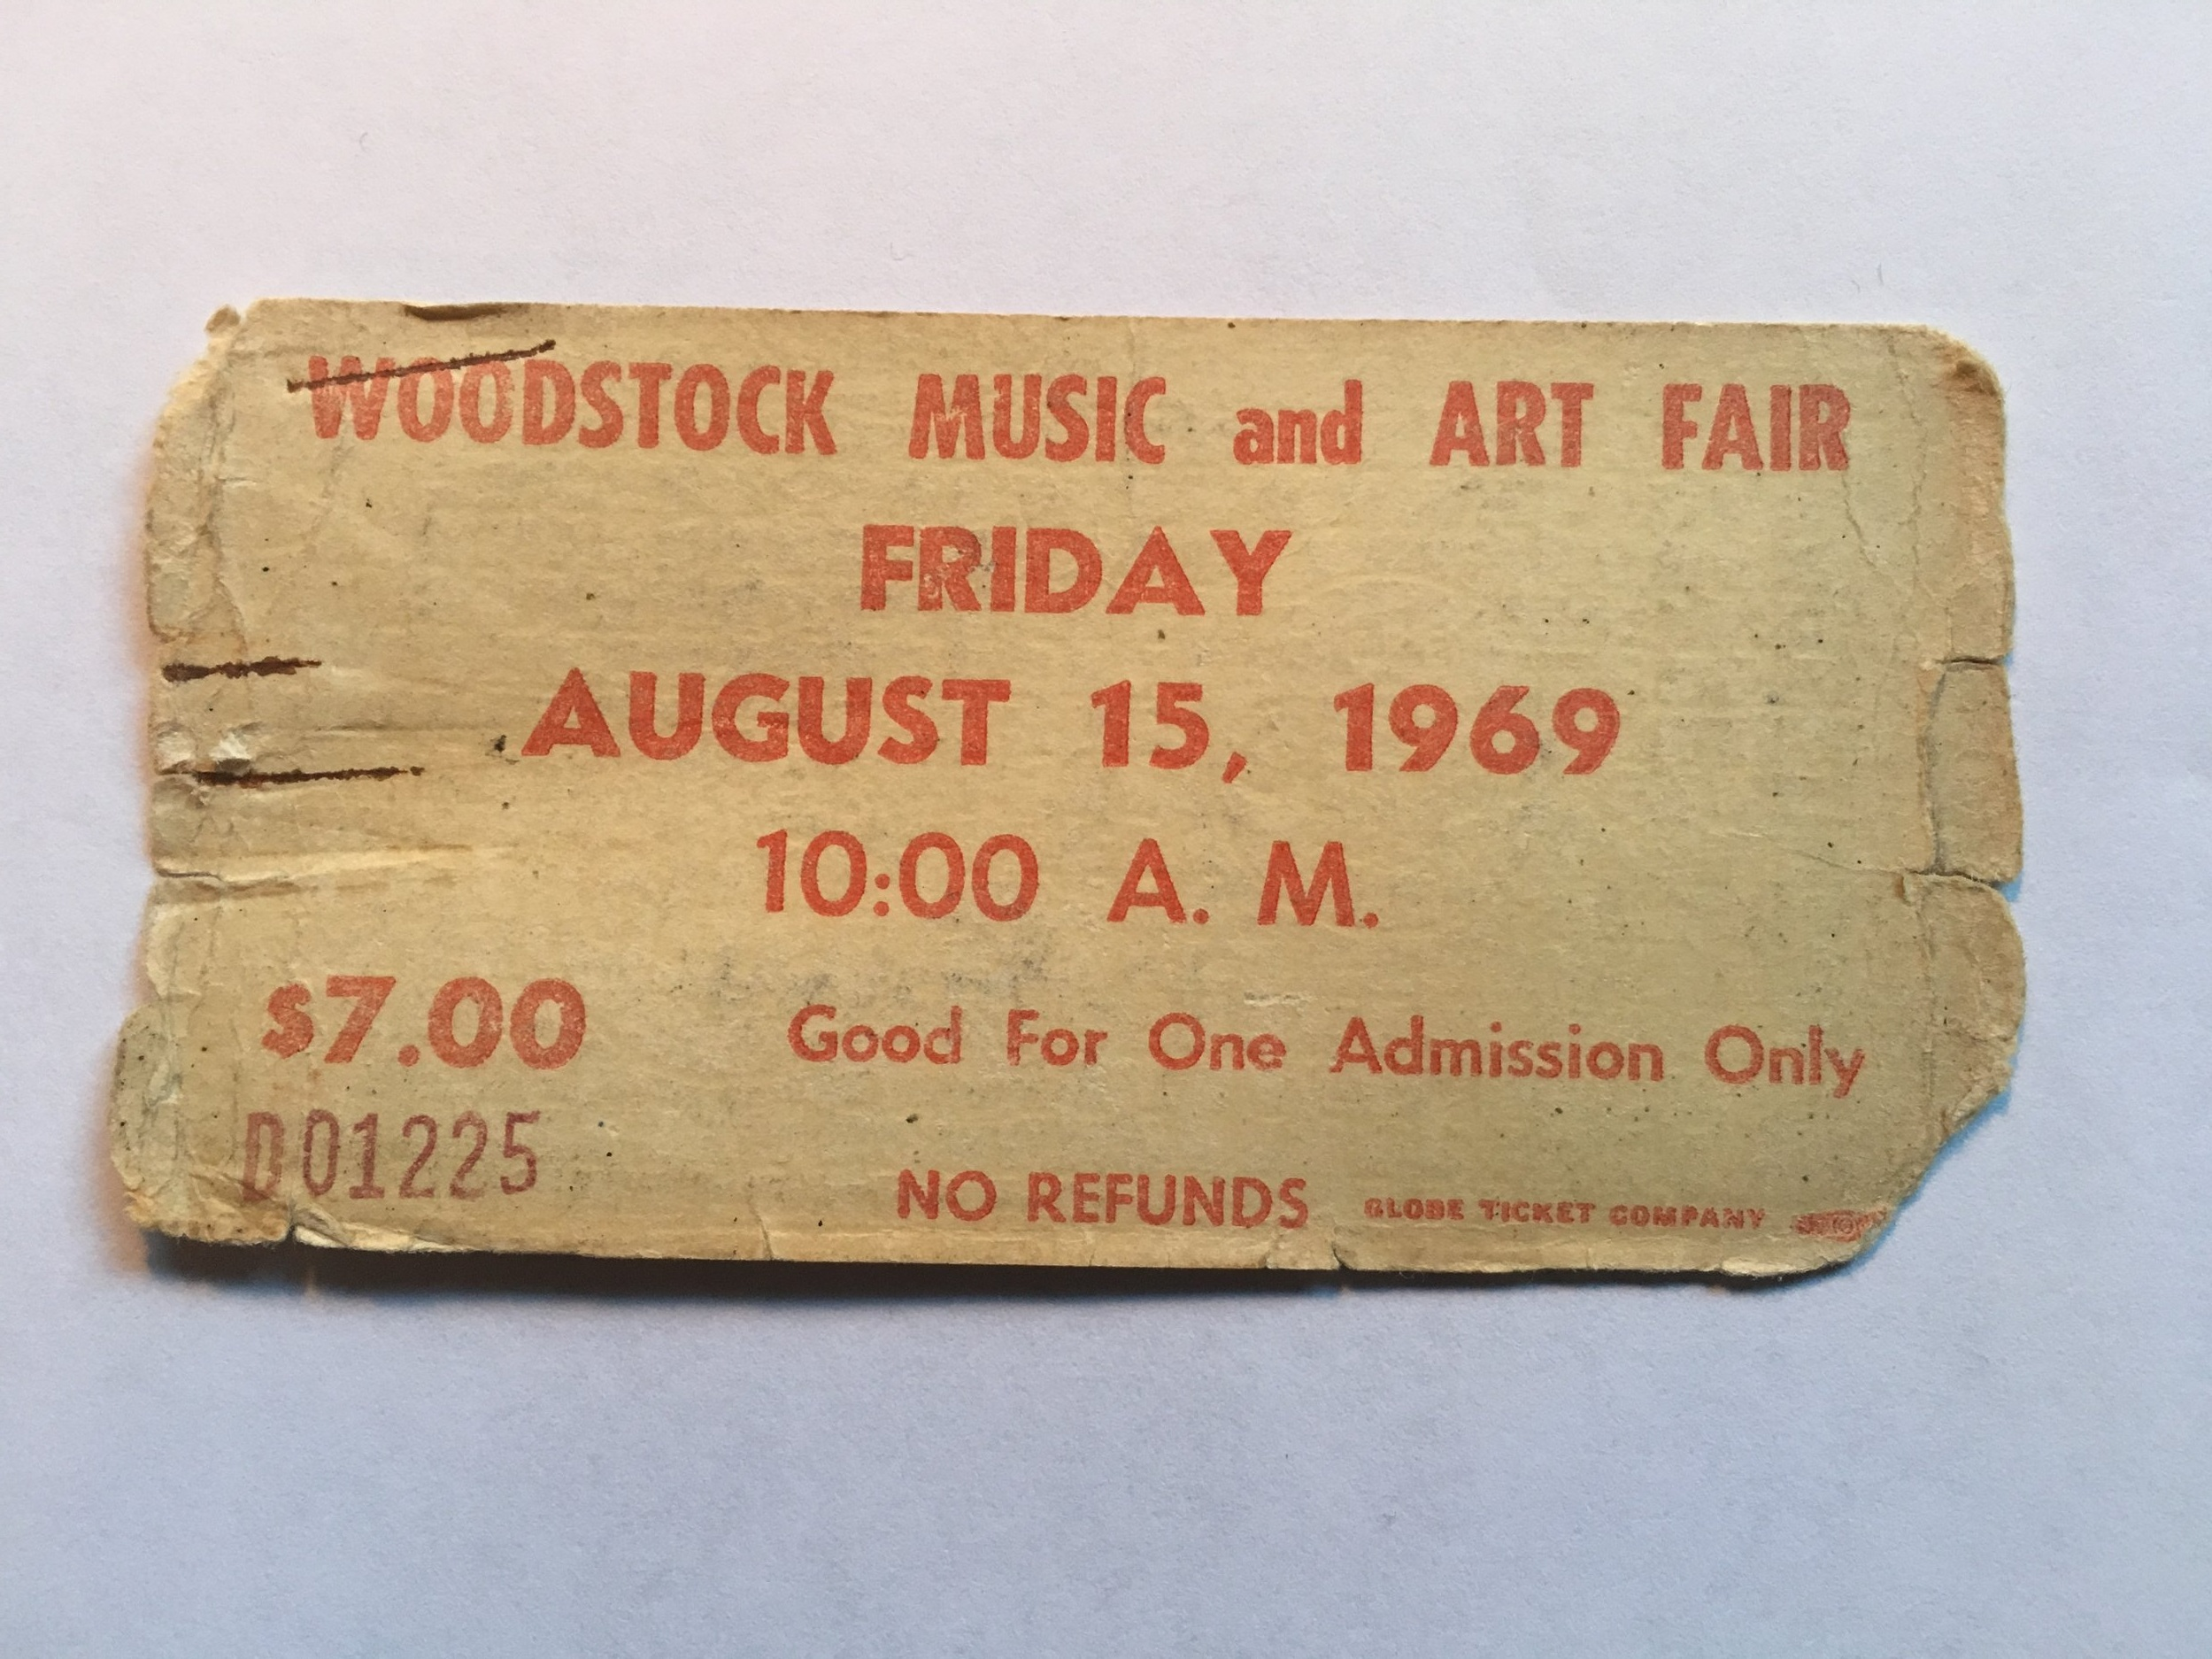 Kerson preserved his Woodstock ticket.